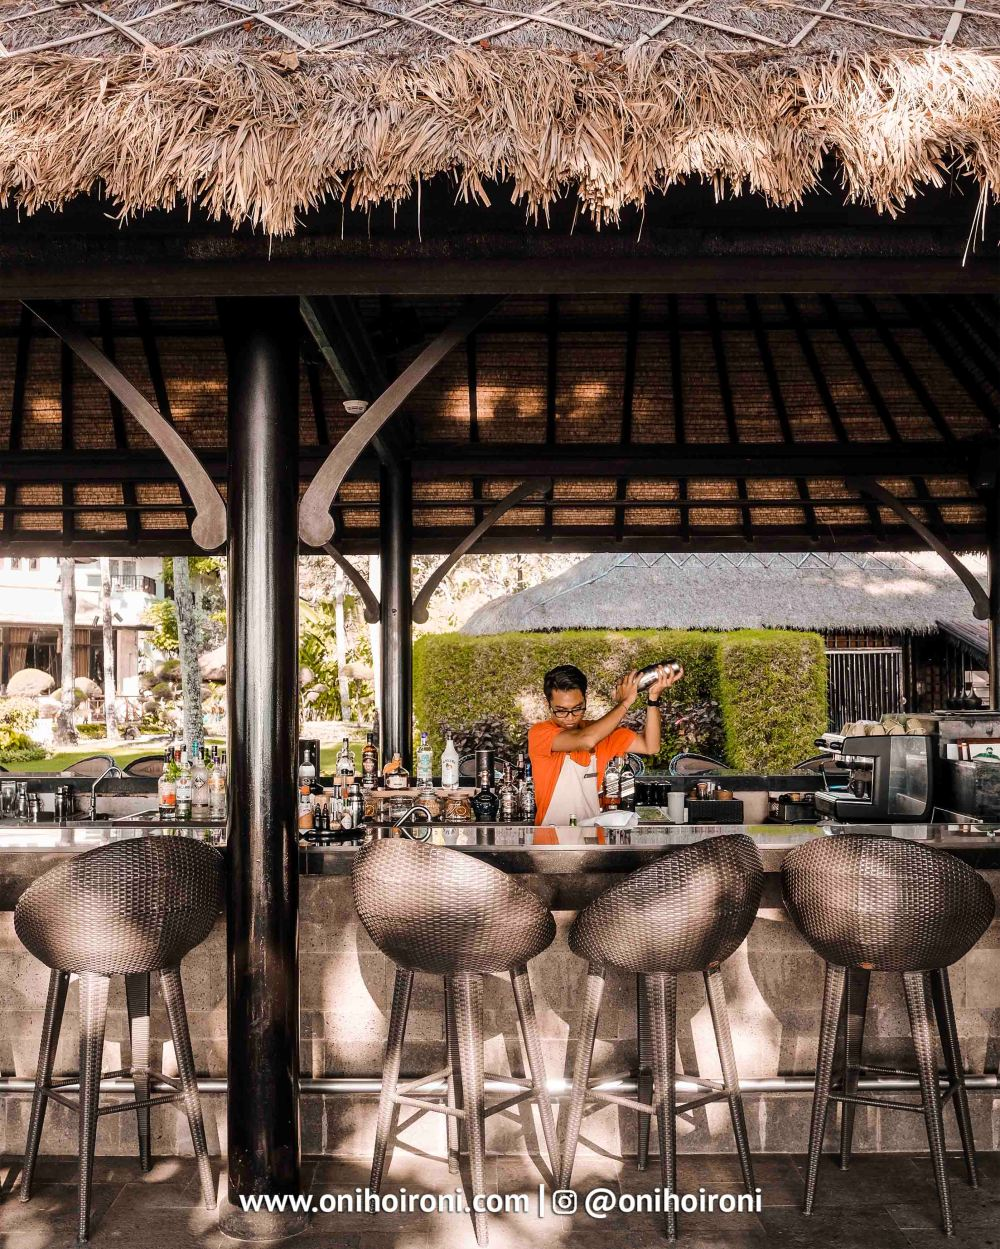 16 Sunset beach bar and grill intercontinental bali resort oni hoironi restaurant di jimbaran copy